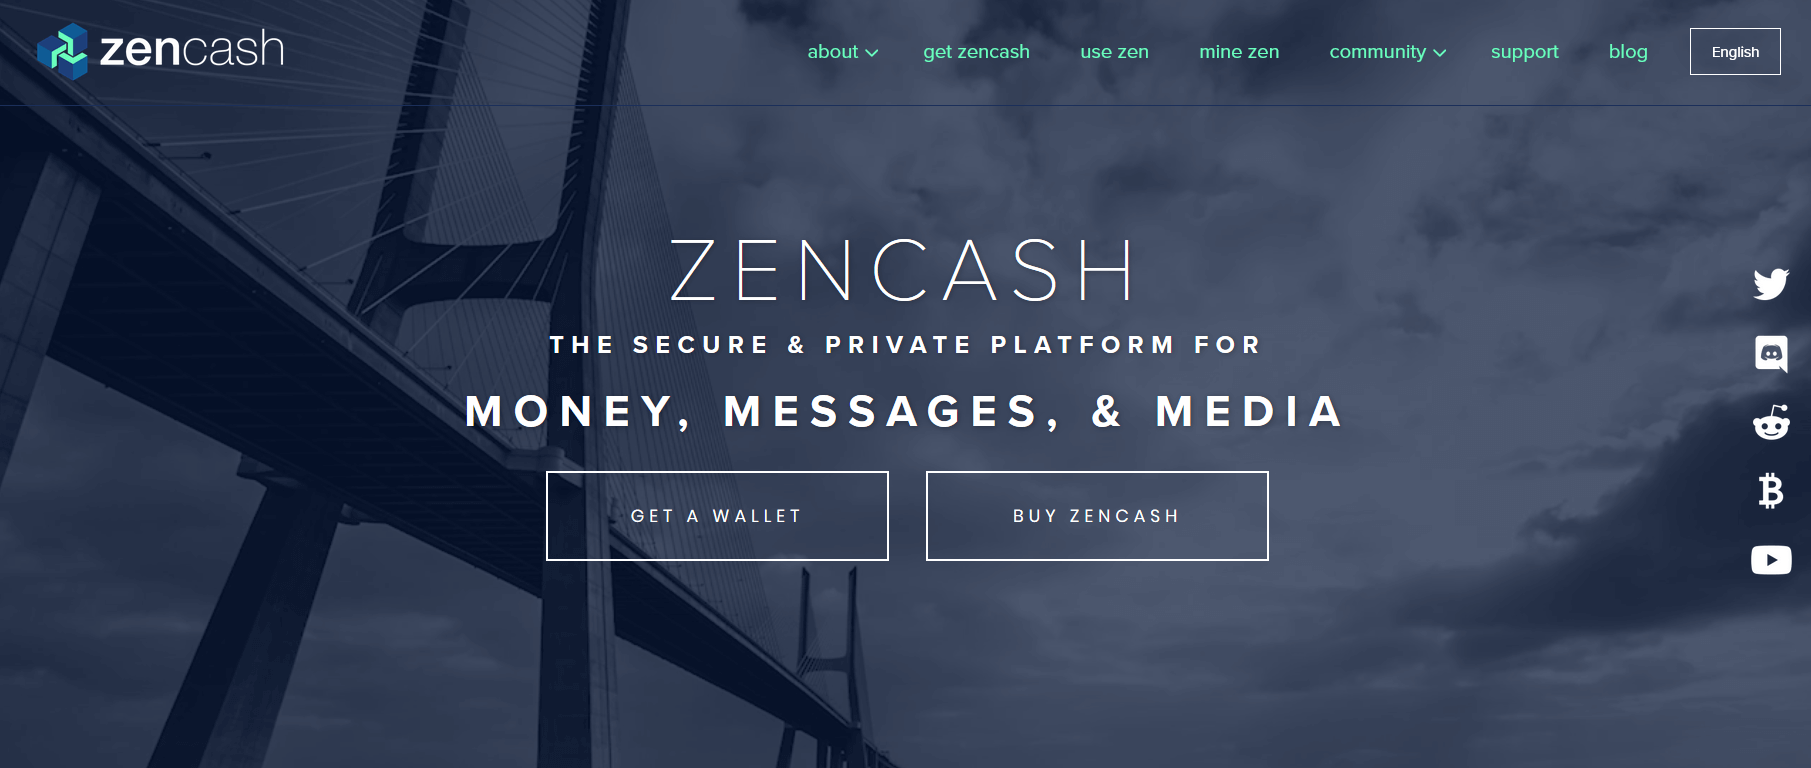 How to Mine ZenCash: Tutorial, Profitability, and Tricks